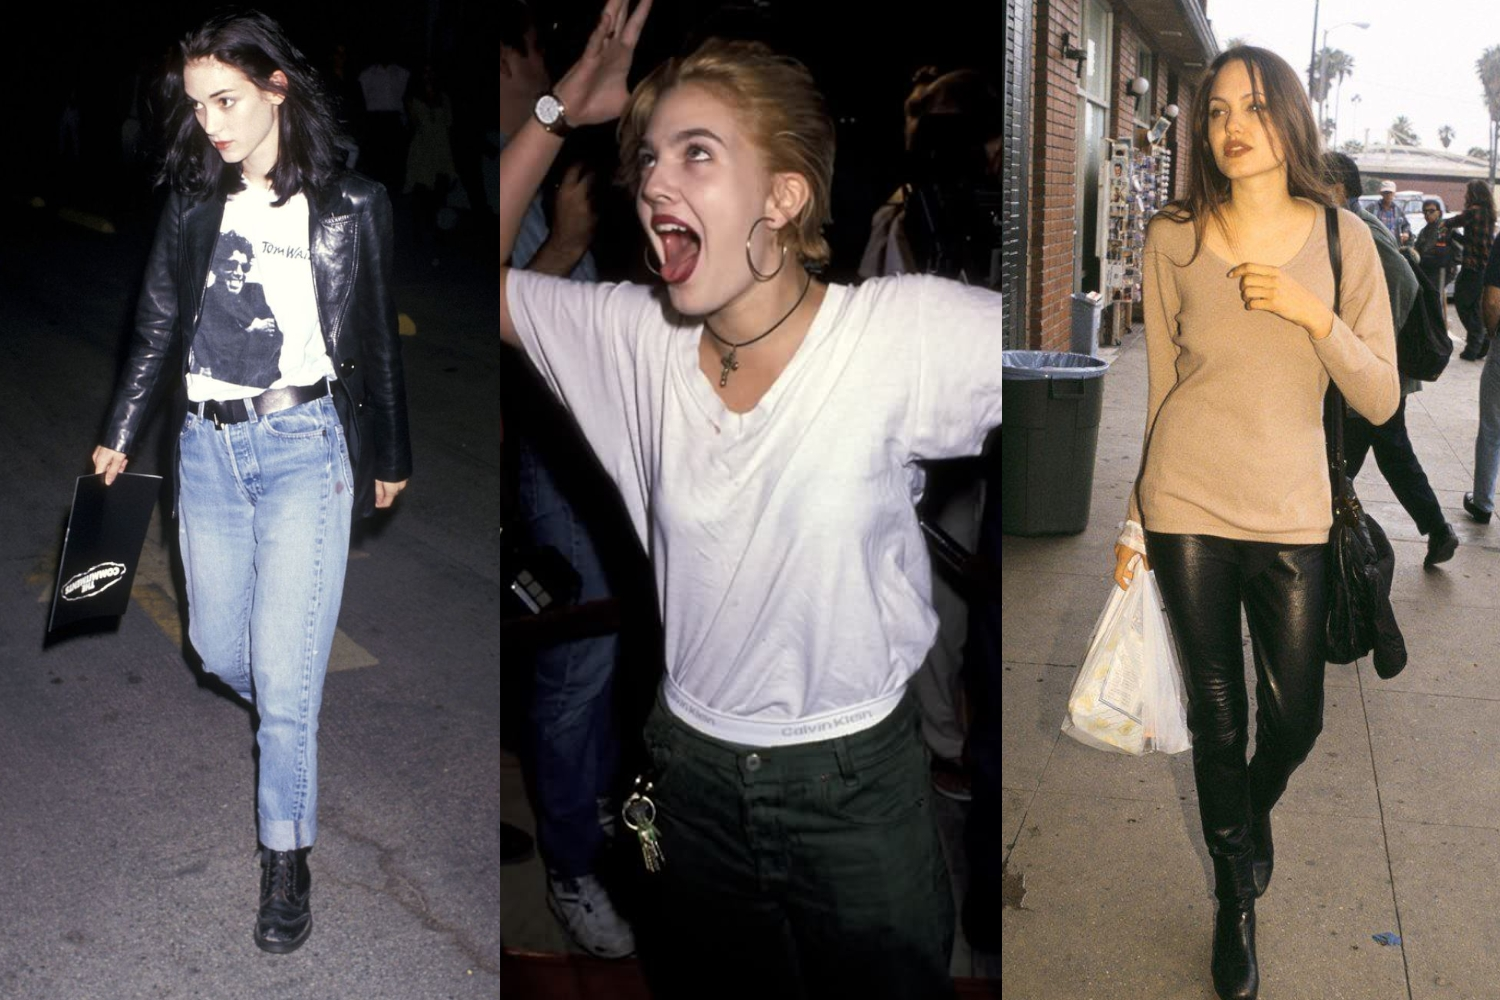 Winona Ryder, Drew Barrymore & Angelina Jolie wearing grunge fashion in 90's